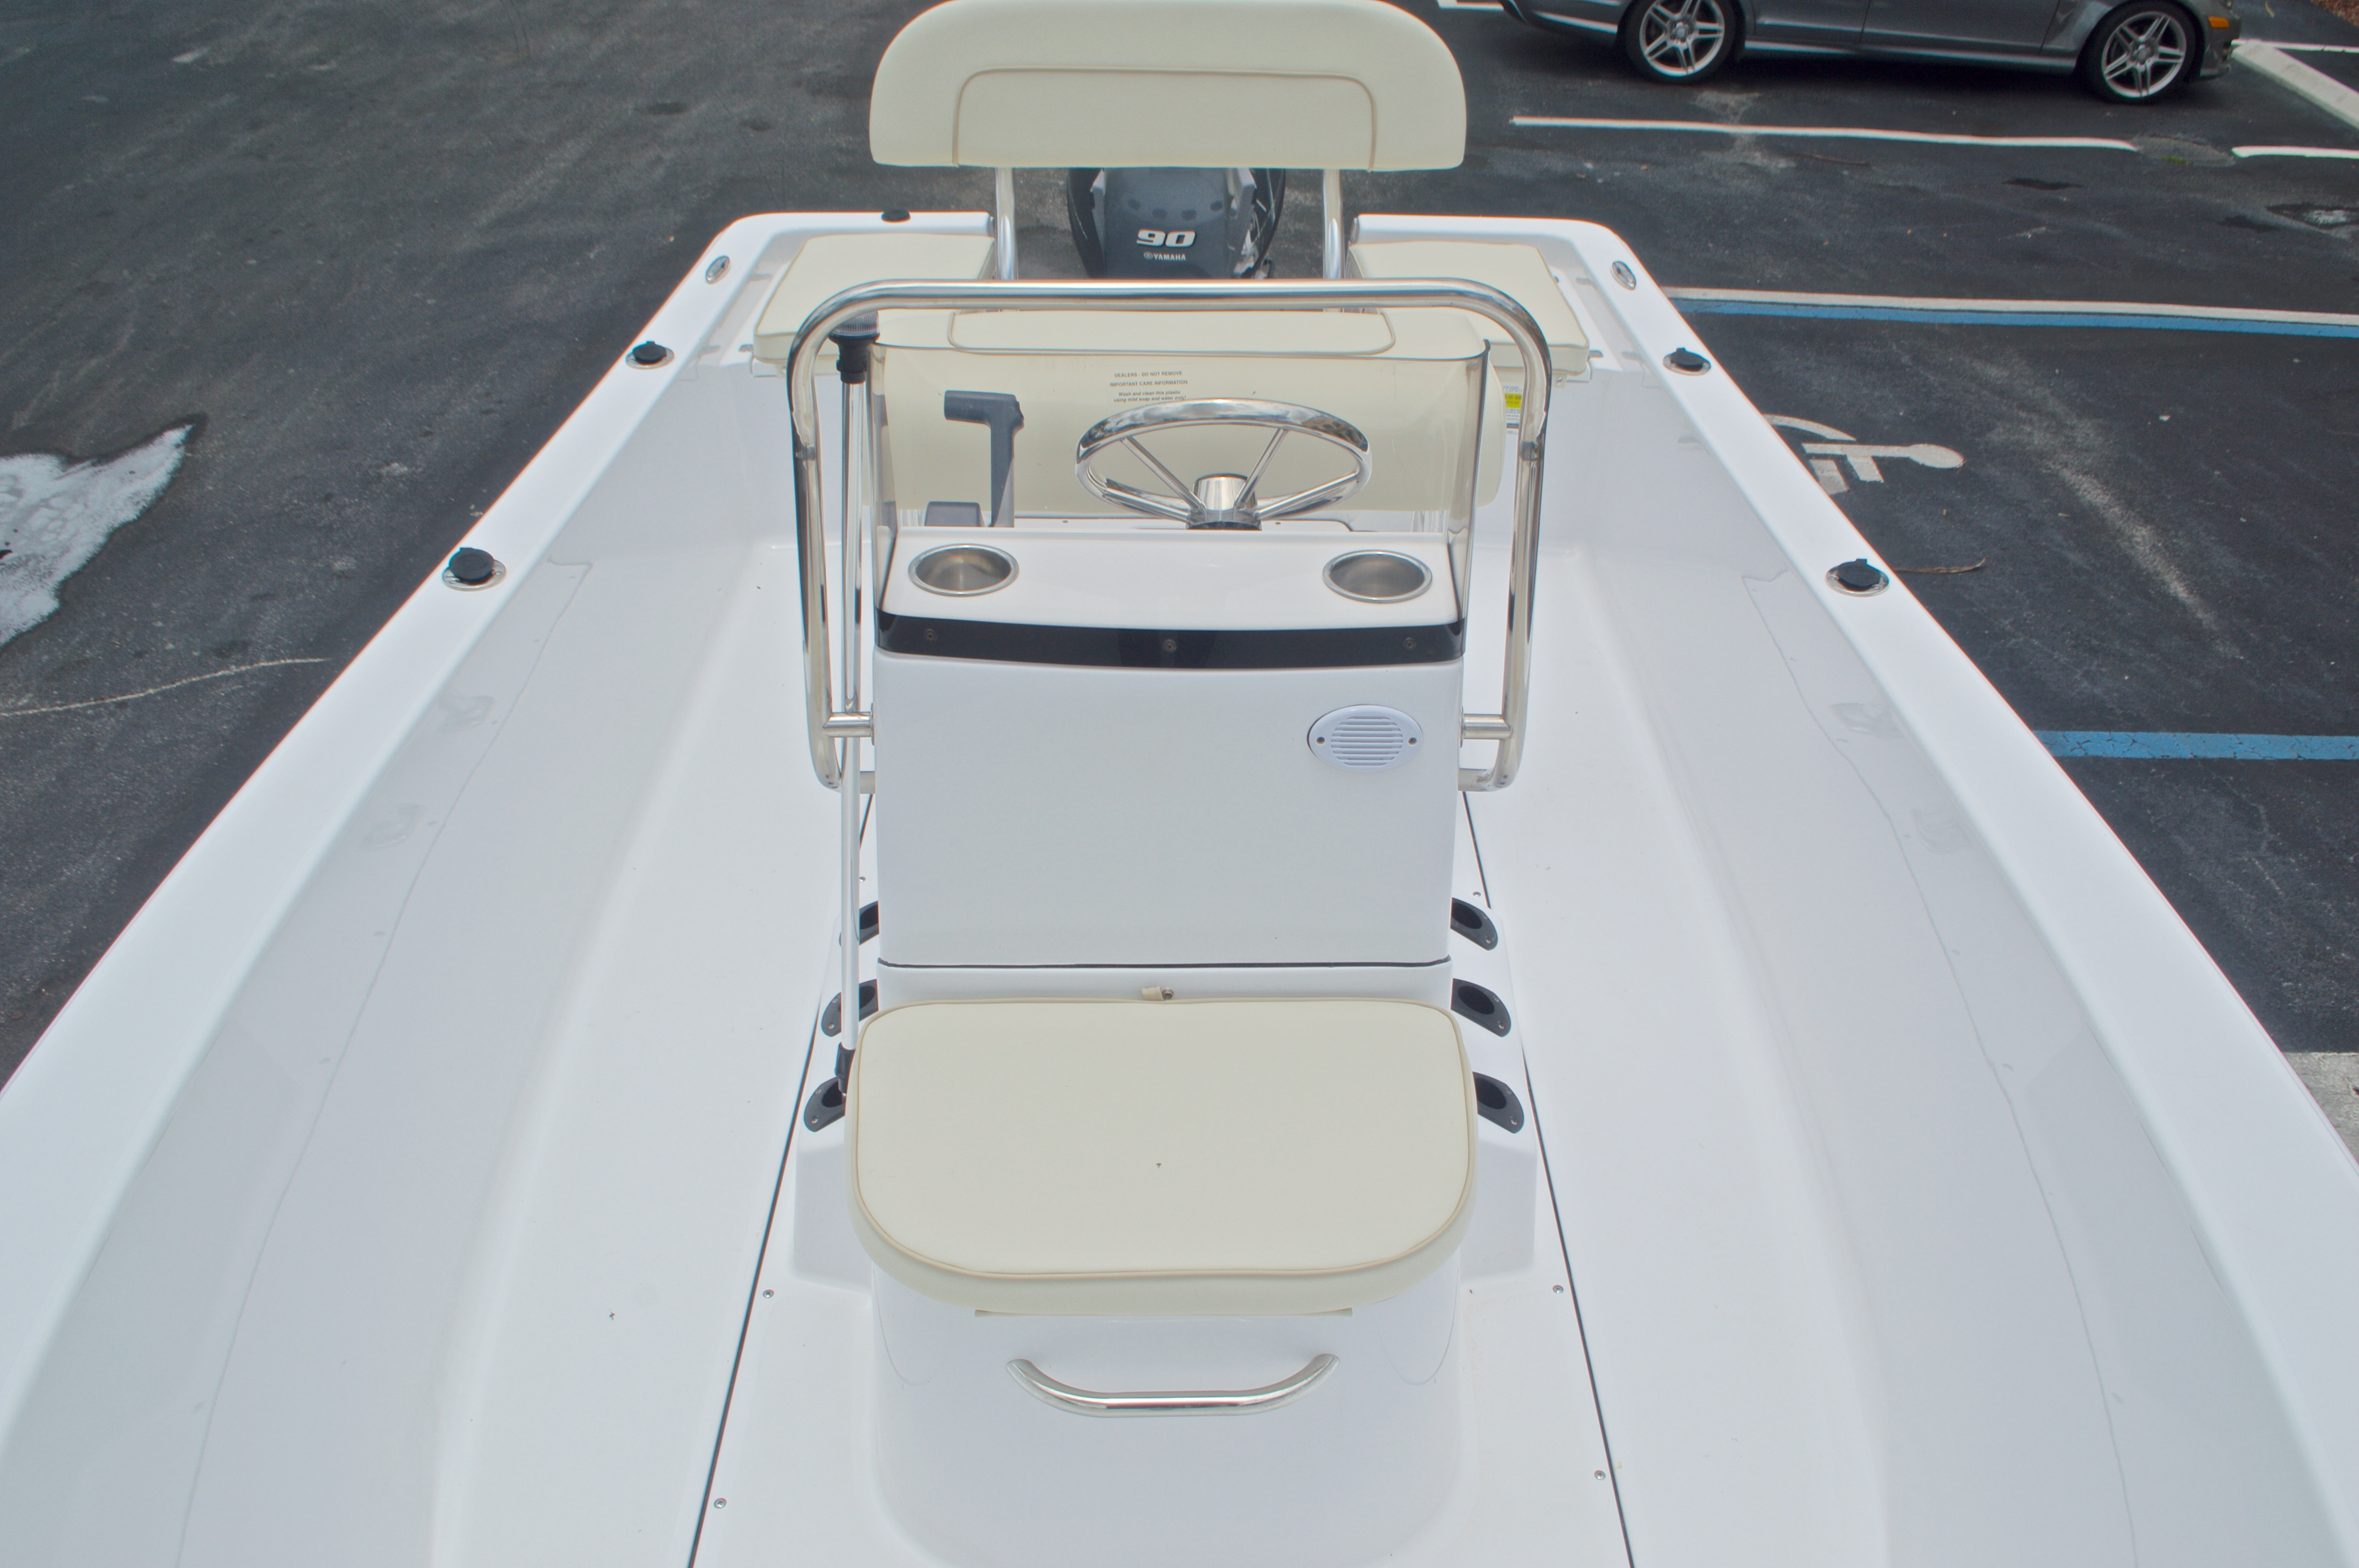 Thumbnail 23 for New 2016 Sportsman 17 Island Reef boat for sale in Miami, FL